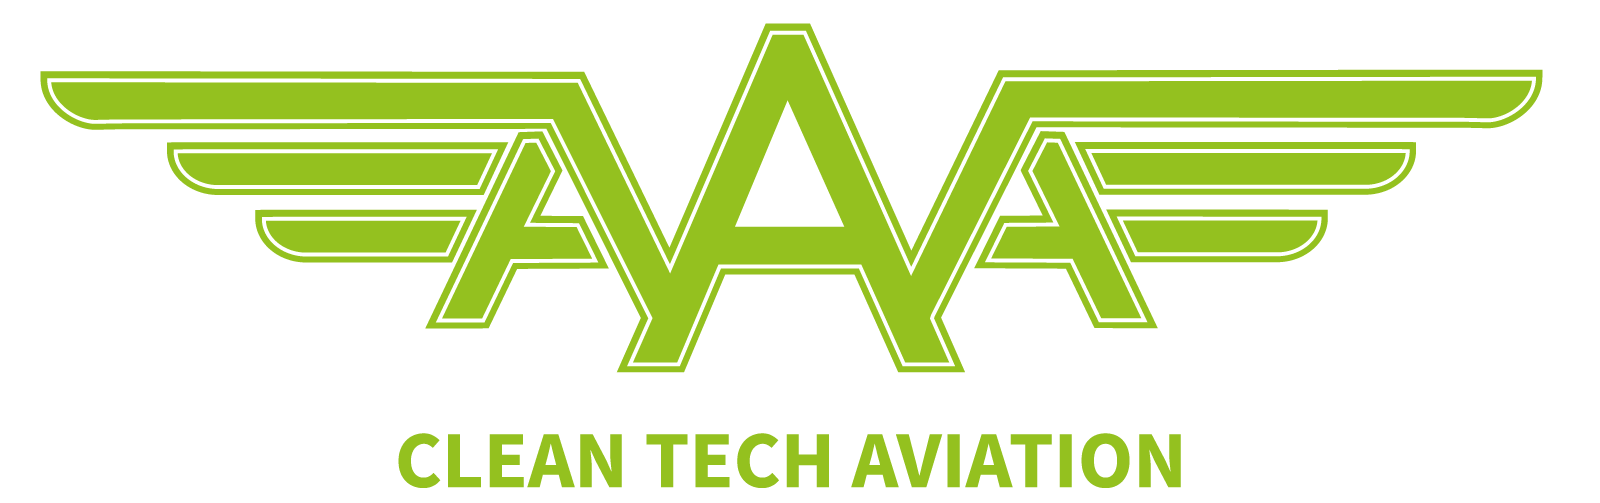 Clean Tech Aviation